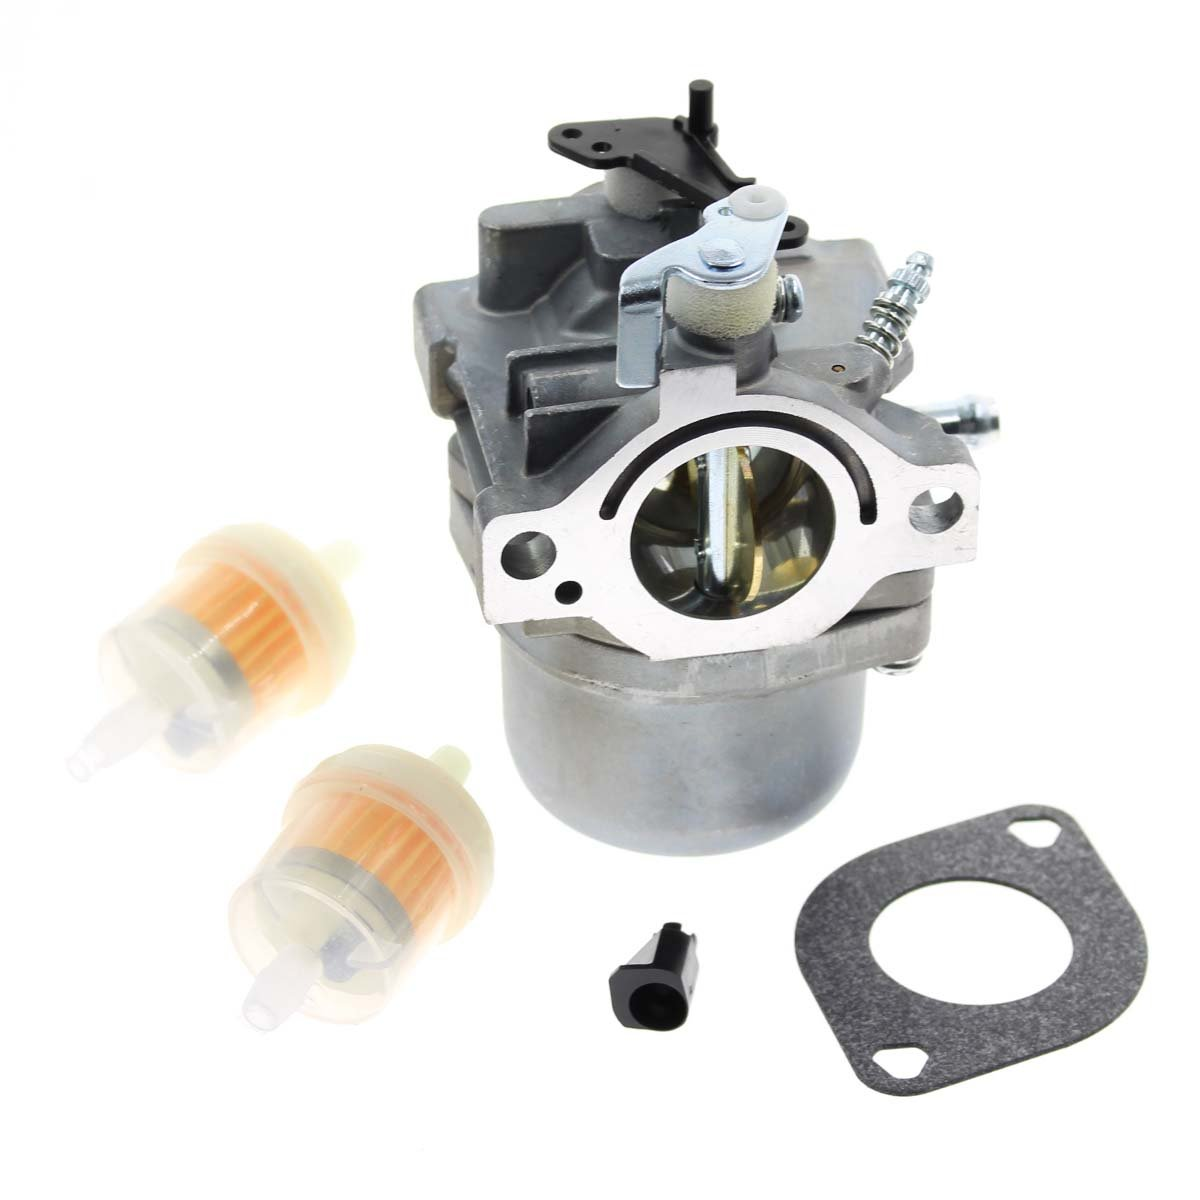 Carbhub Carburetor for Briggs & Stratton Walbro LMT 5-4993 with Mounting Gasket Filter by Carbhub